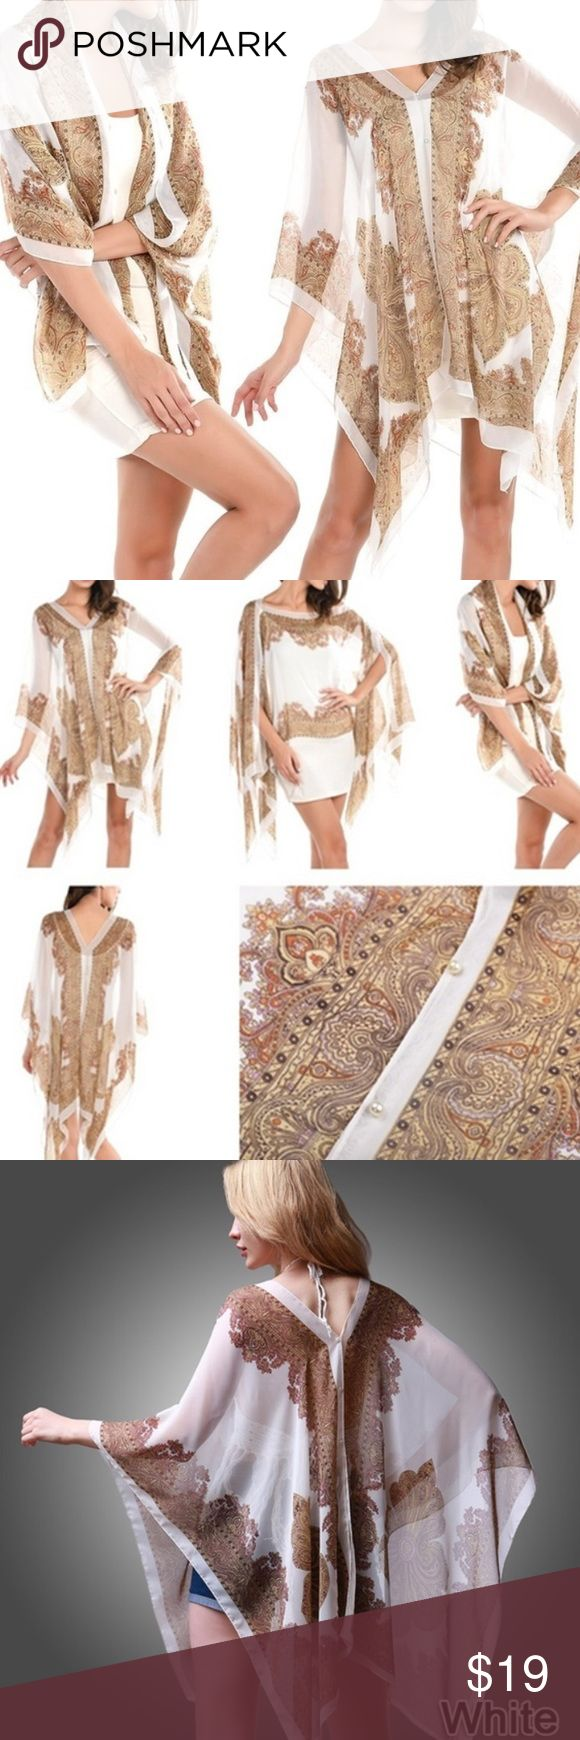 """🌺JUST IN🌺 Multi Style Beach Cover Super cute and versatile sheer cover up. Easily throw it over your bathing suit as a stylish kaftan or over a tank top and shorts for a great causal outfit!! Approximately 39""""x62"""" - only available in white.  ✨ Sizes: One Size  ✨Material:  Chiffon ✨Pattern: White with gold design ✨Note from Manufacturer: There may be a 2-3% difference according to manual measurement. Please check the measurement chart carefully before you buy this item. Sizing has been…"""